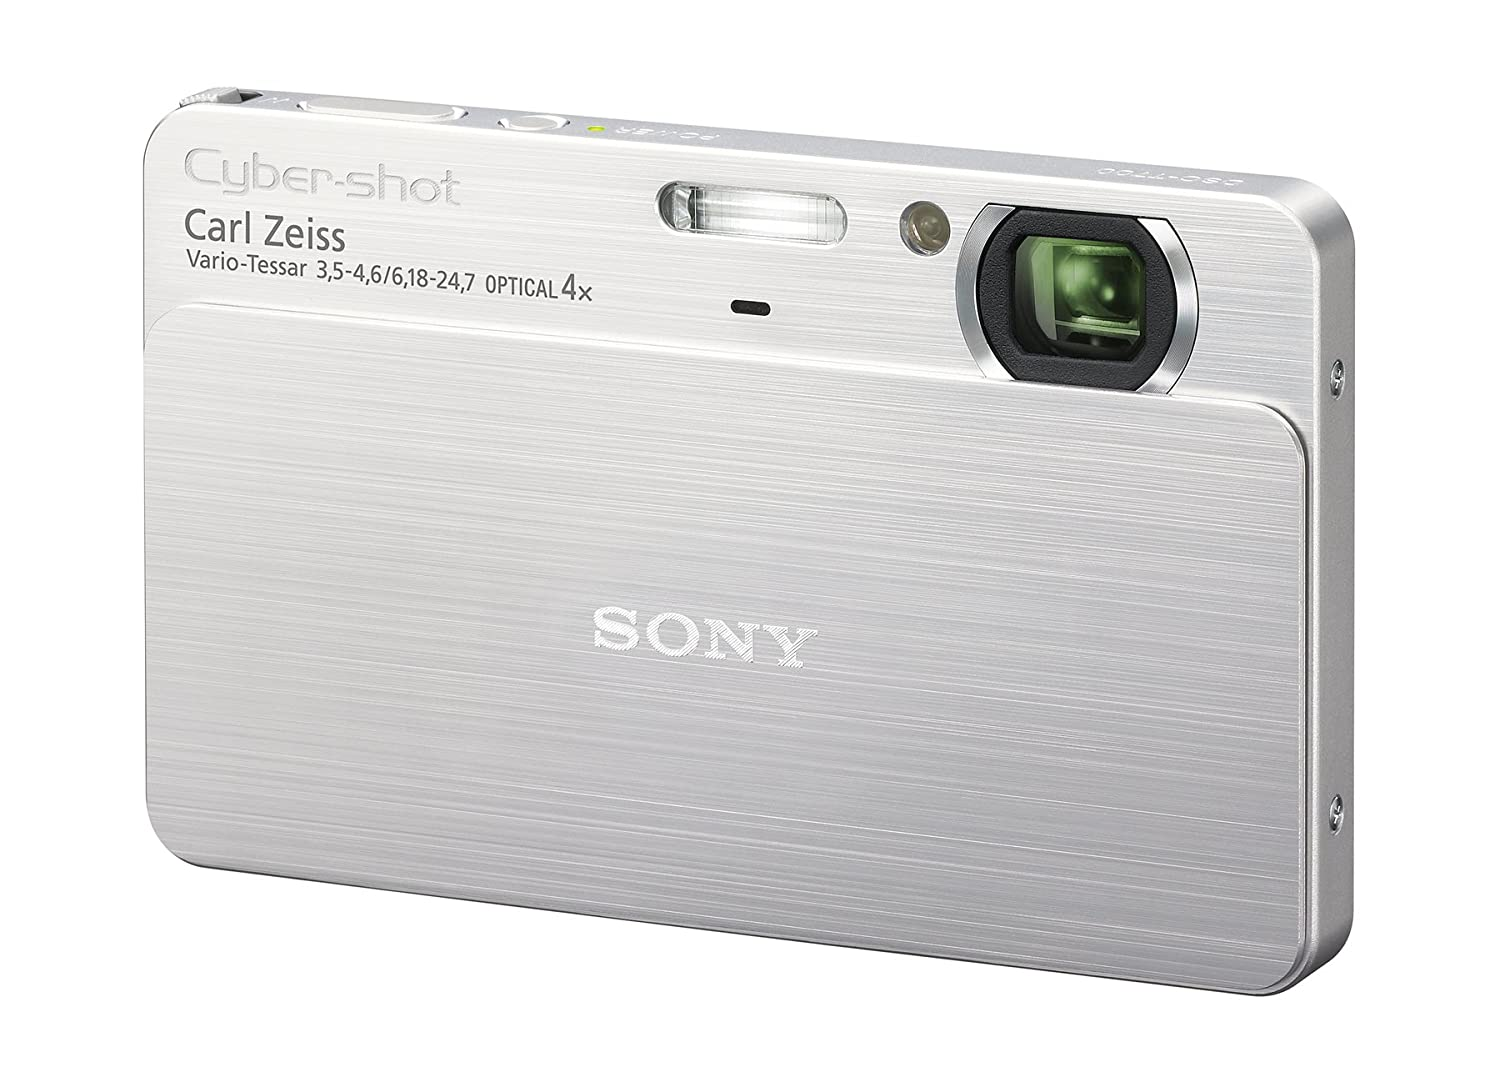 Amazon.com : Sony Cybershot DSC-T700 10MP Digital Camera with 4x Optical  Zoom with Super Steady Shot Image Stabilization (Silver) : Point And Shoot  Digital ...